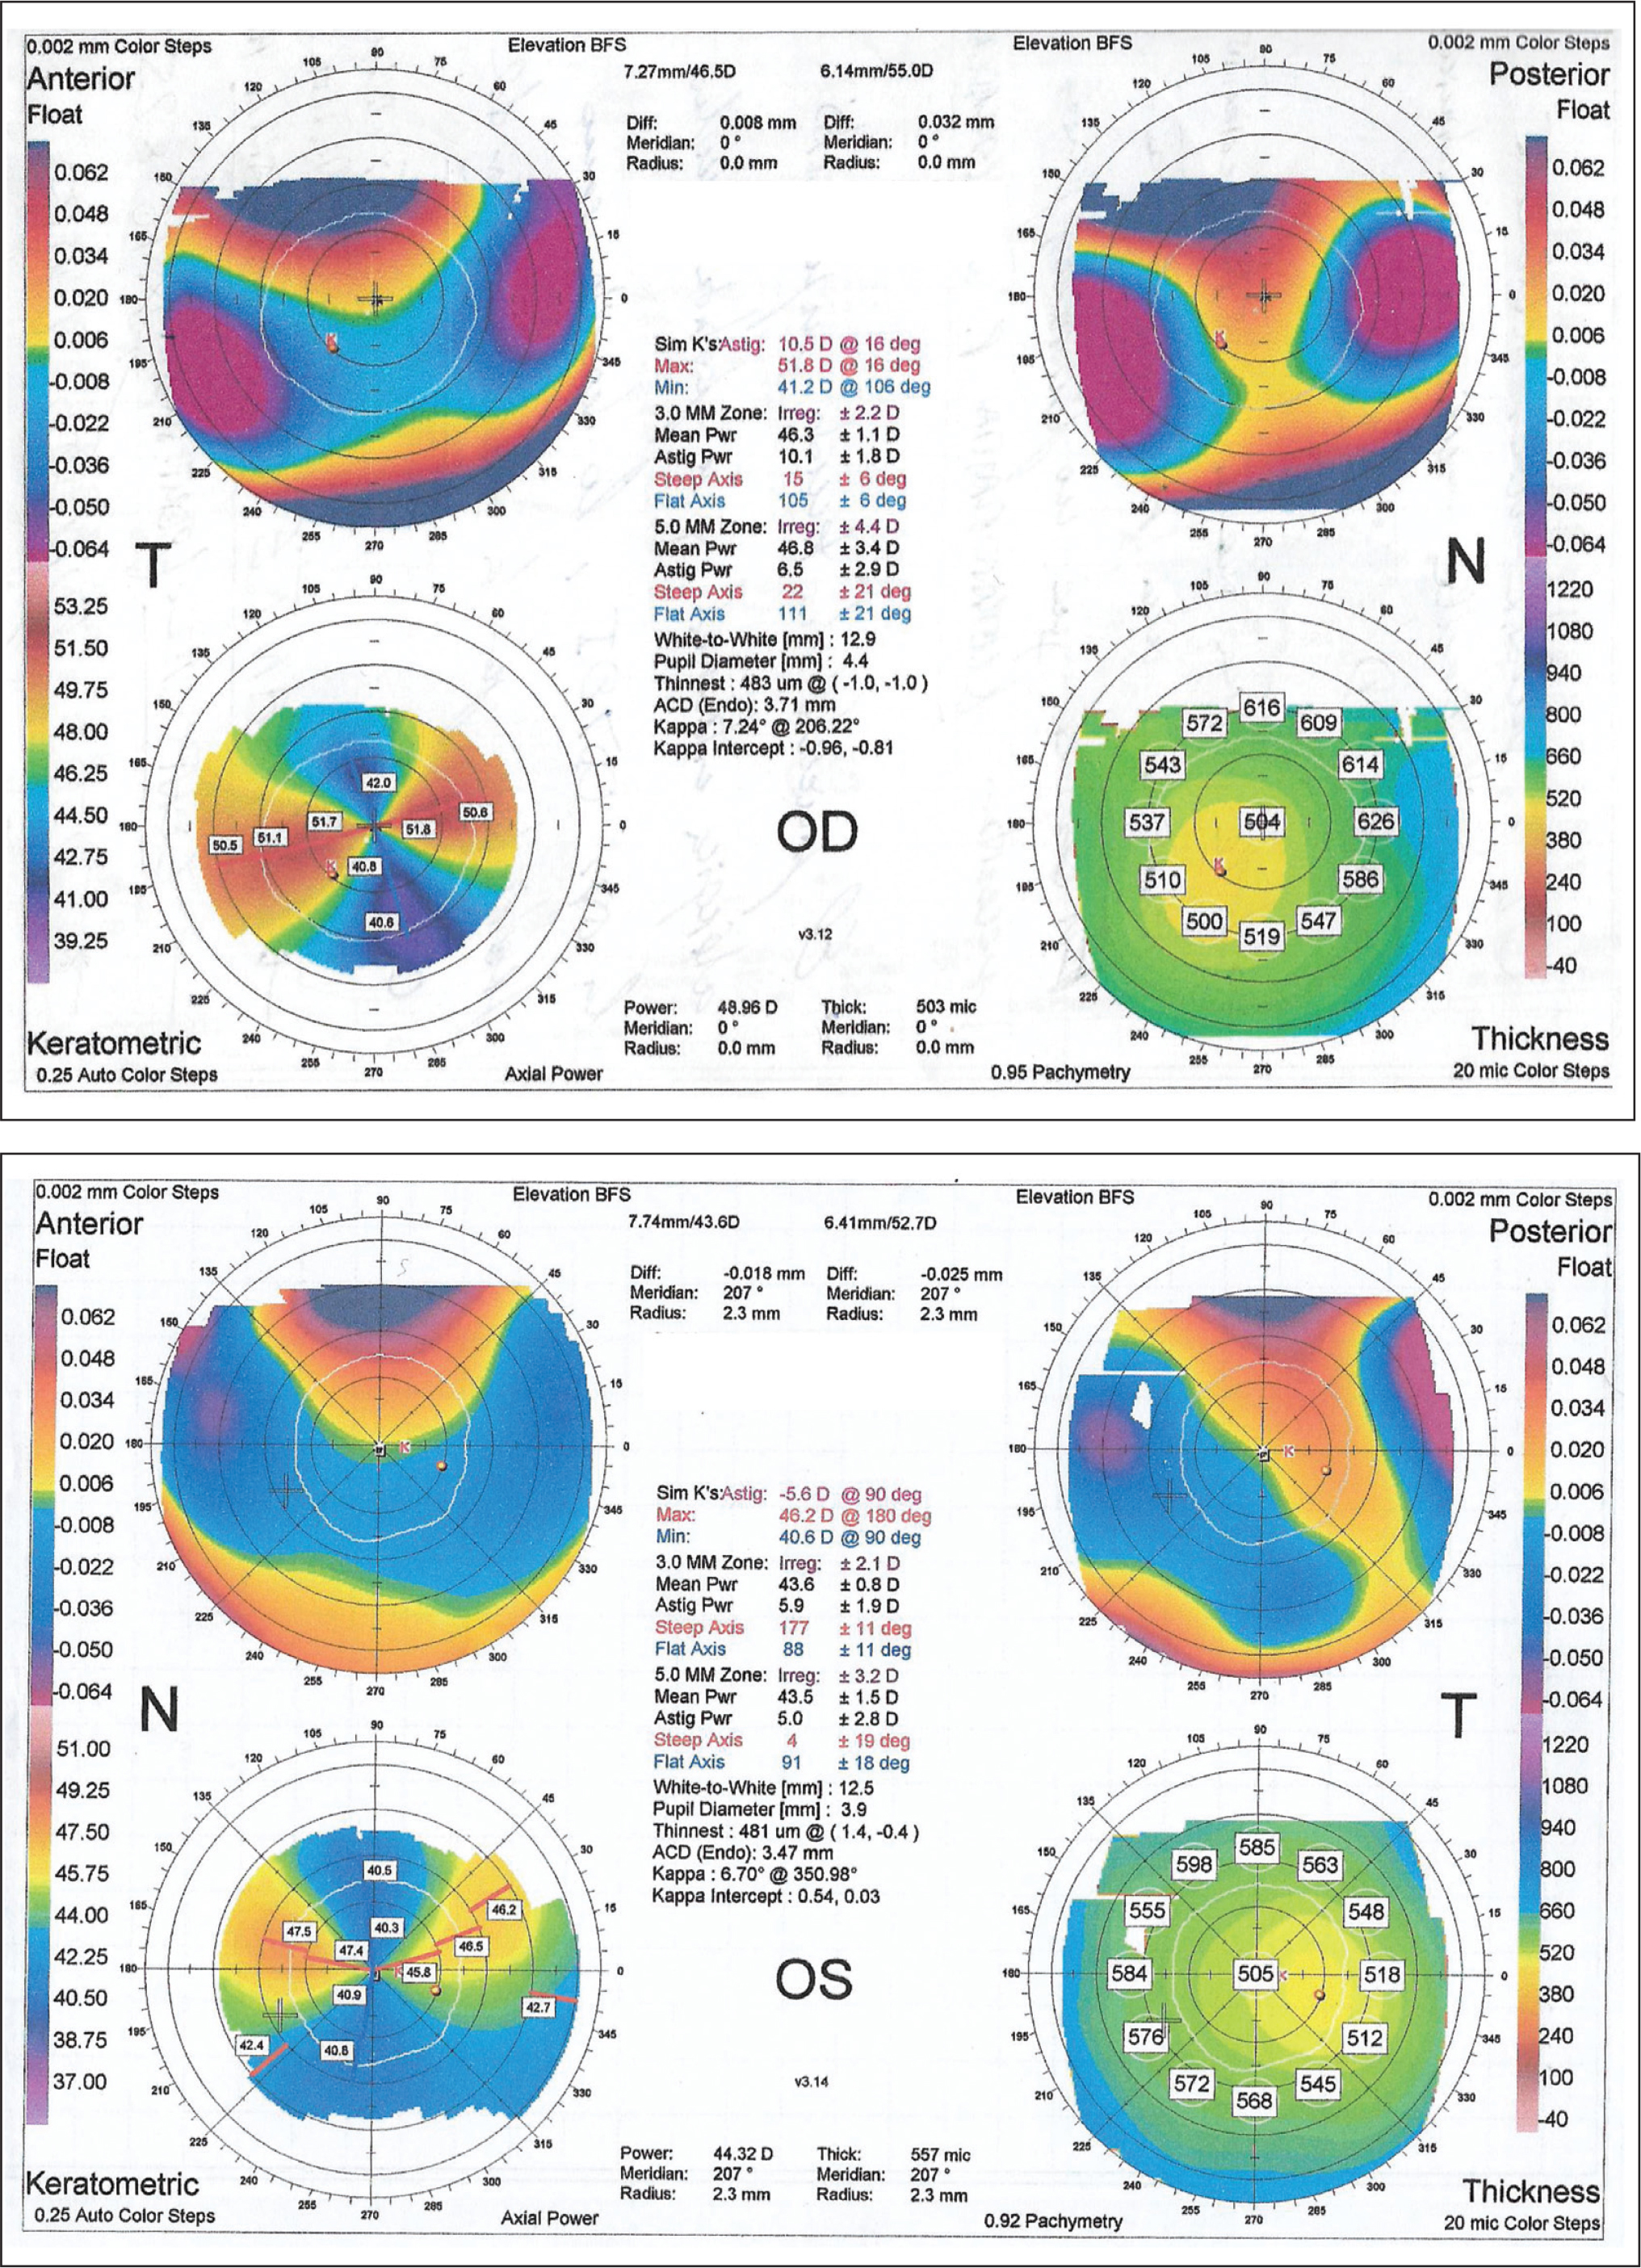 Preoperative corneal topography showing the increased against-the-rule astigmatism and the anterior and posterior elevation of the cornea in the superior quadrants. (Top) Right eye, 2008. (Bottom) Left eye, 2012.